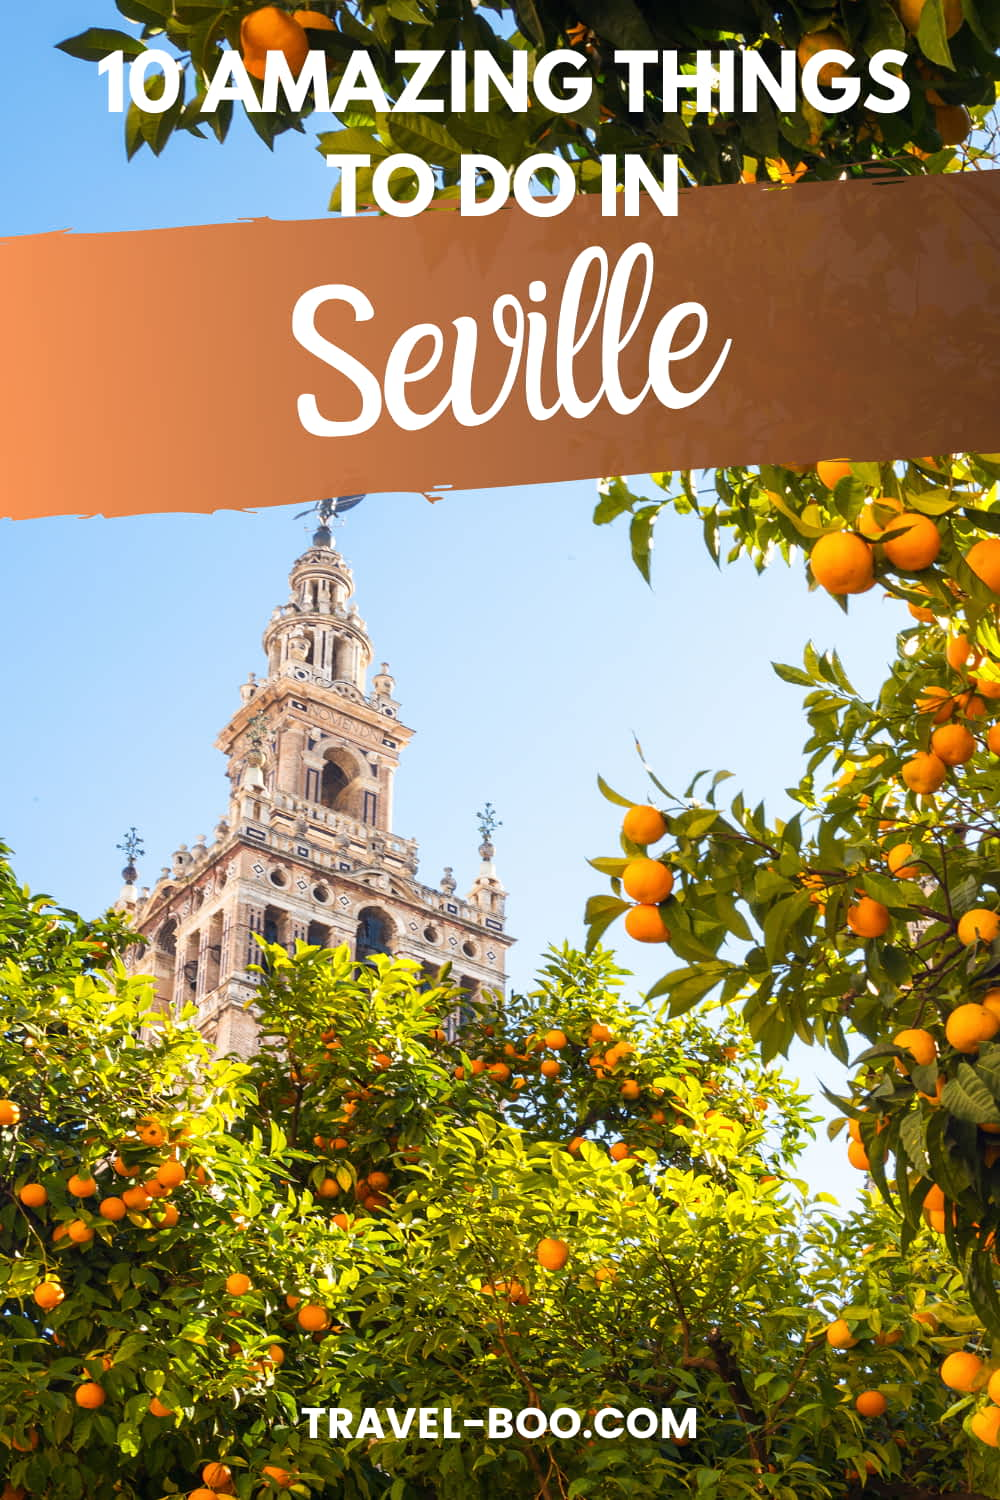 10 Amazing things to do in Seville, Spain! Visiting Seville? Then don't miss out on these top things to do in Seville! #sevillespain #sevillespaintravel #sevillespainthingstodo | Seville Spain Things to do | Seville Spain | Seville Spain Travel | Spain Travel | Spain Travel Guides | Spain Travel Tips